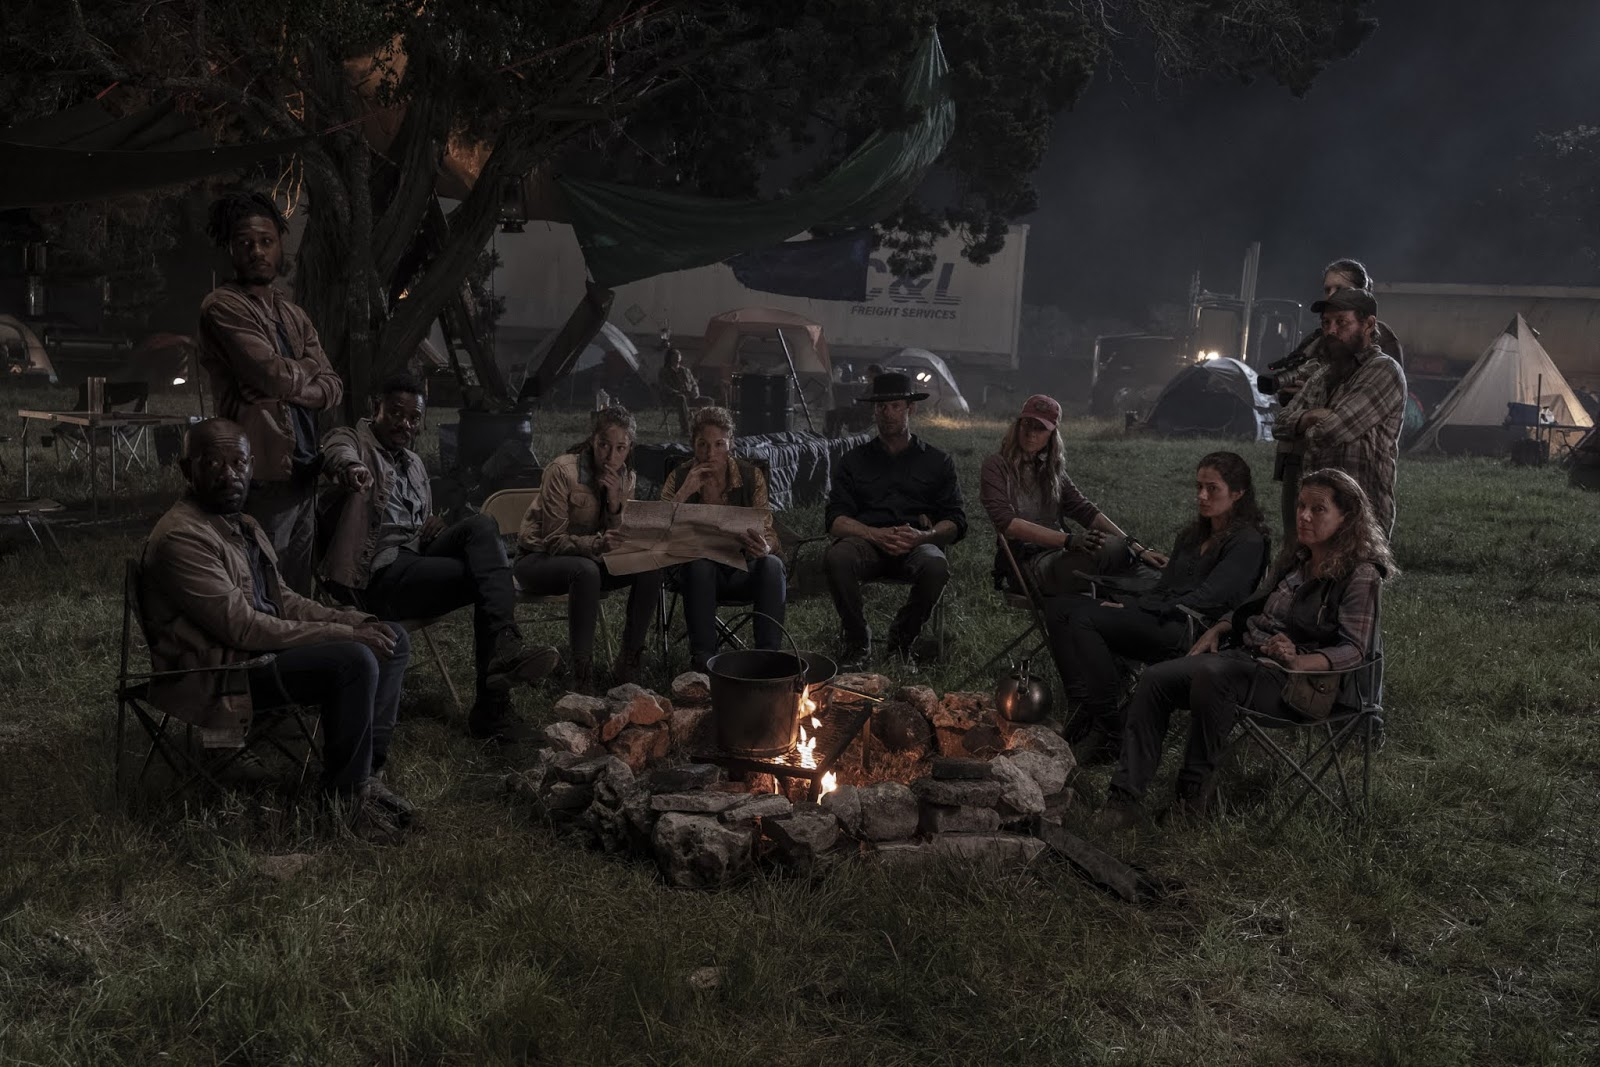 El grupo, en el episodio 5x15 de Fear The Walking Dead